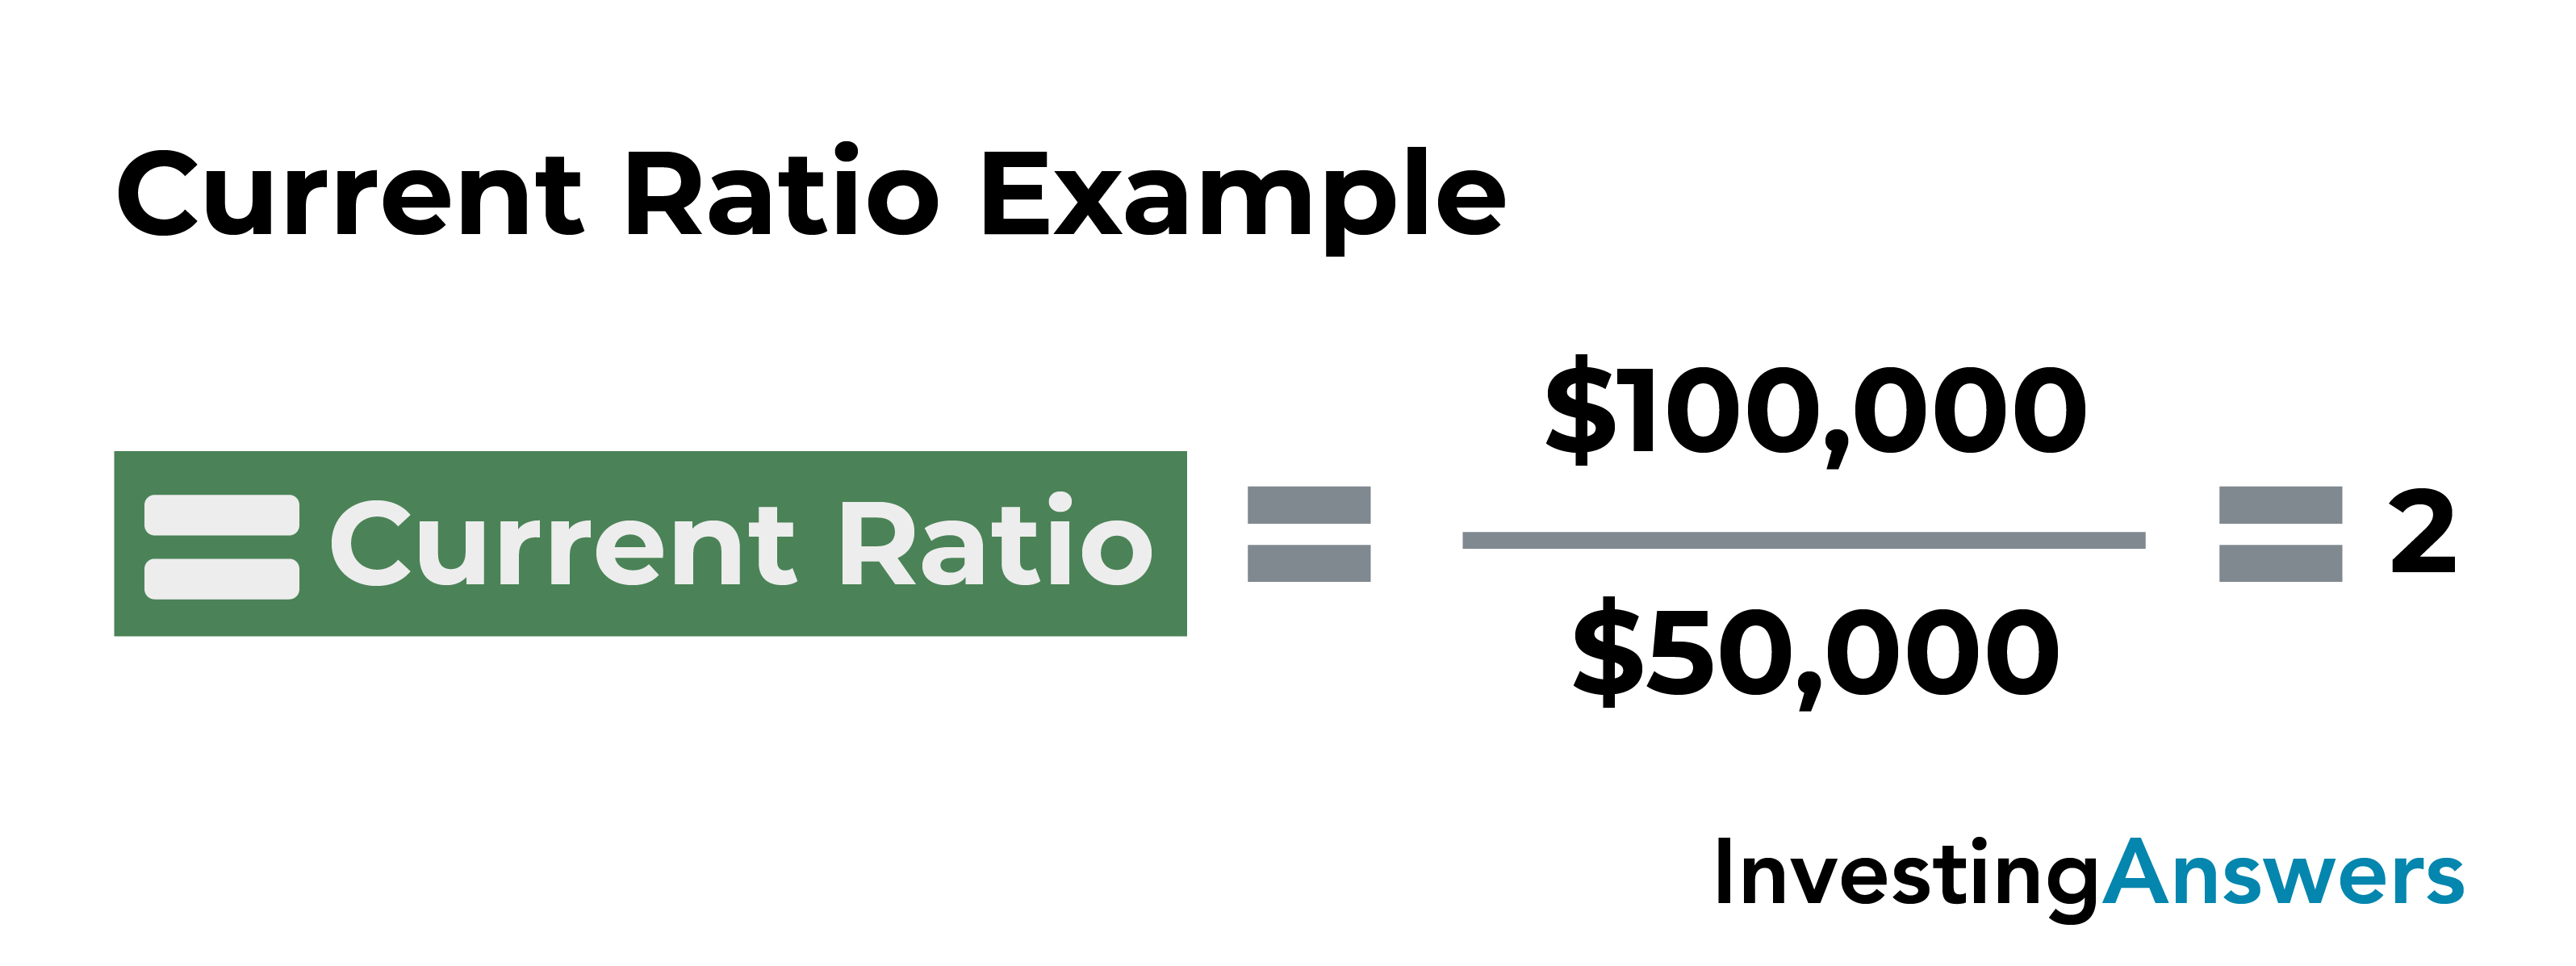 current ratio example